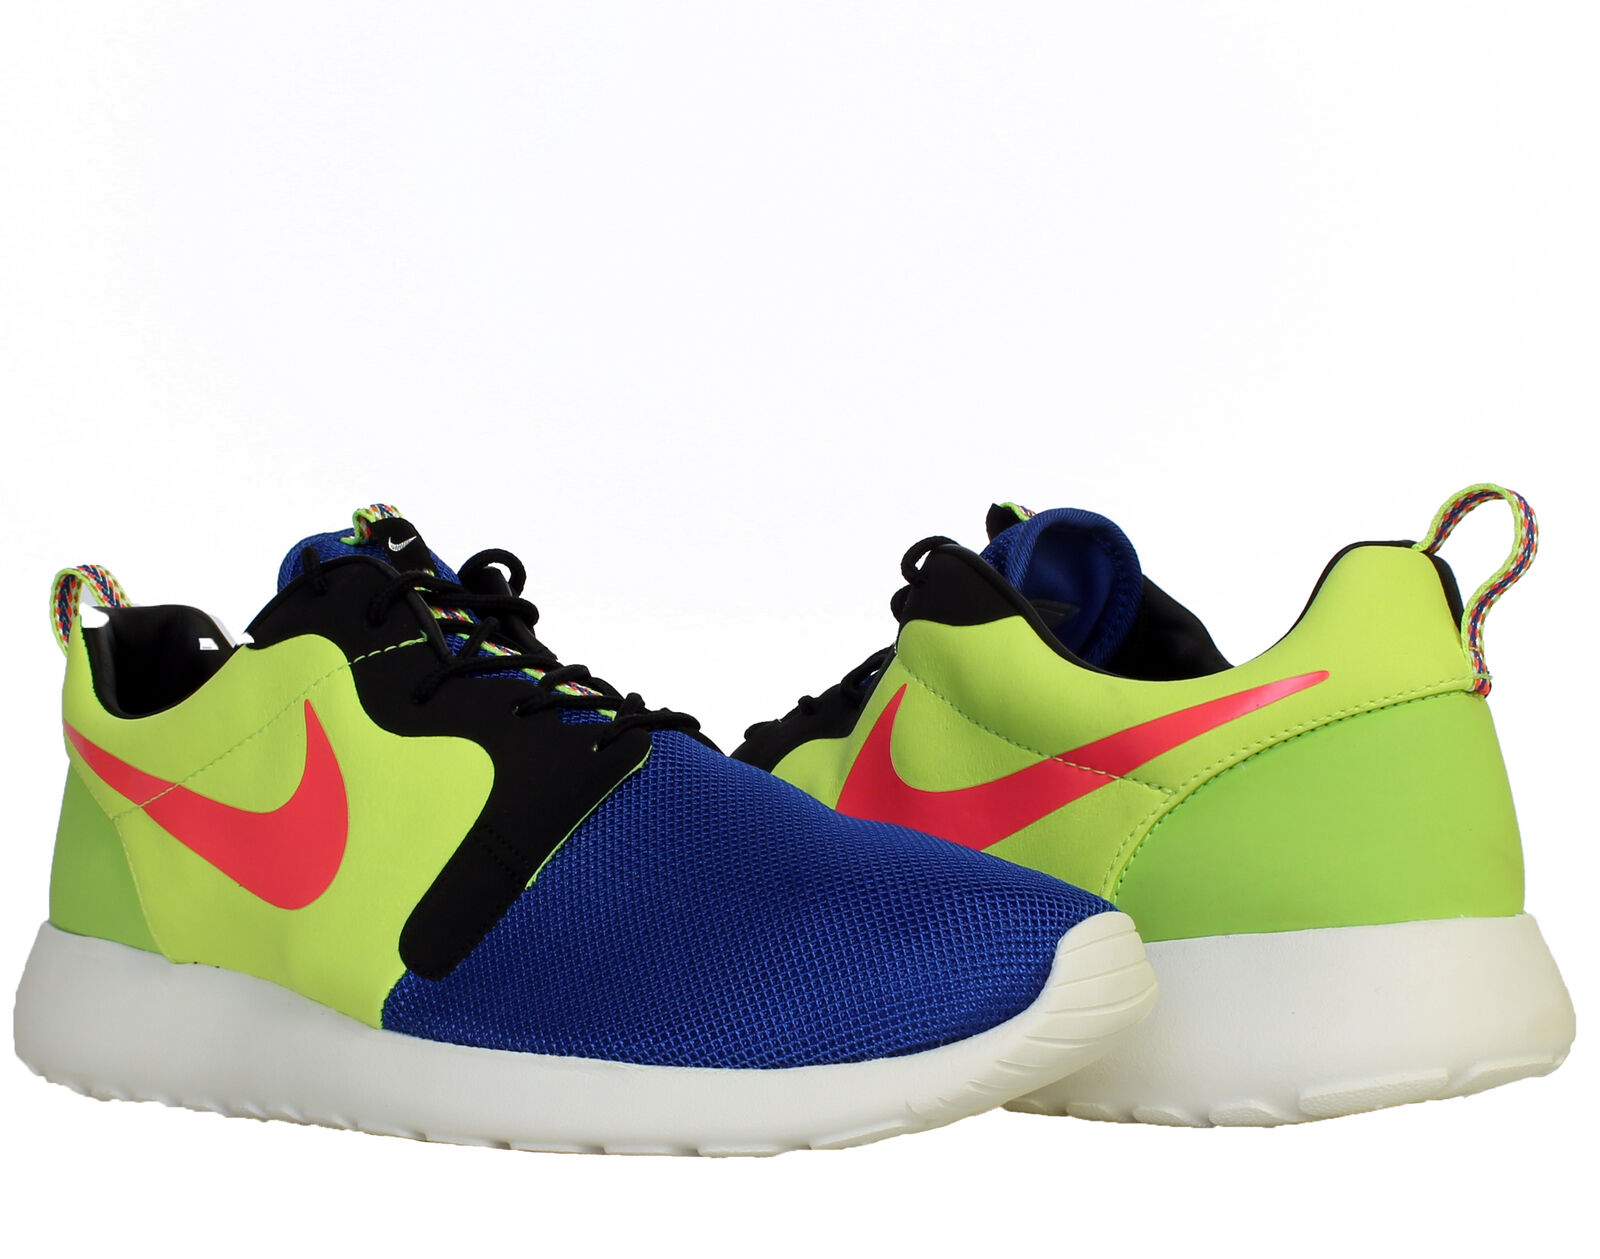 new style 149ab f8a11 Nike Rosherun HYP PRM QS Royal Punch-Volt Men s Running Shoes Shoes Shoes  669689